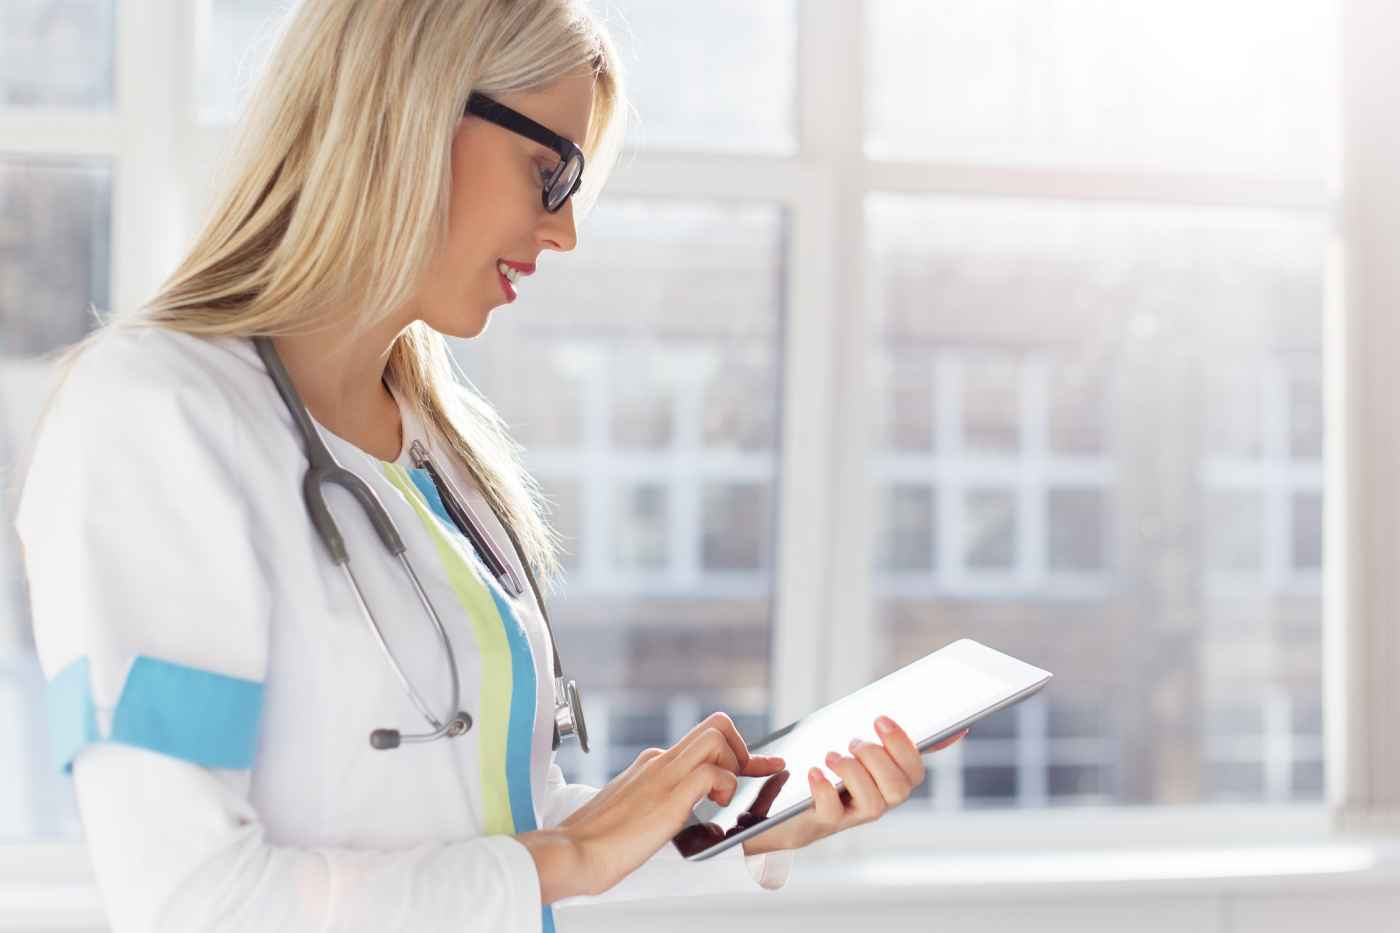 Health Care Apps and Artificial Intelligence